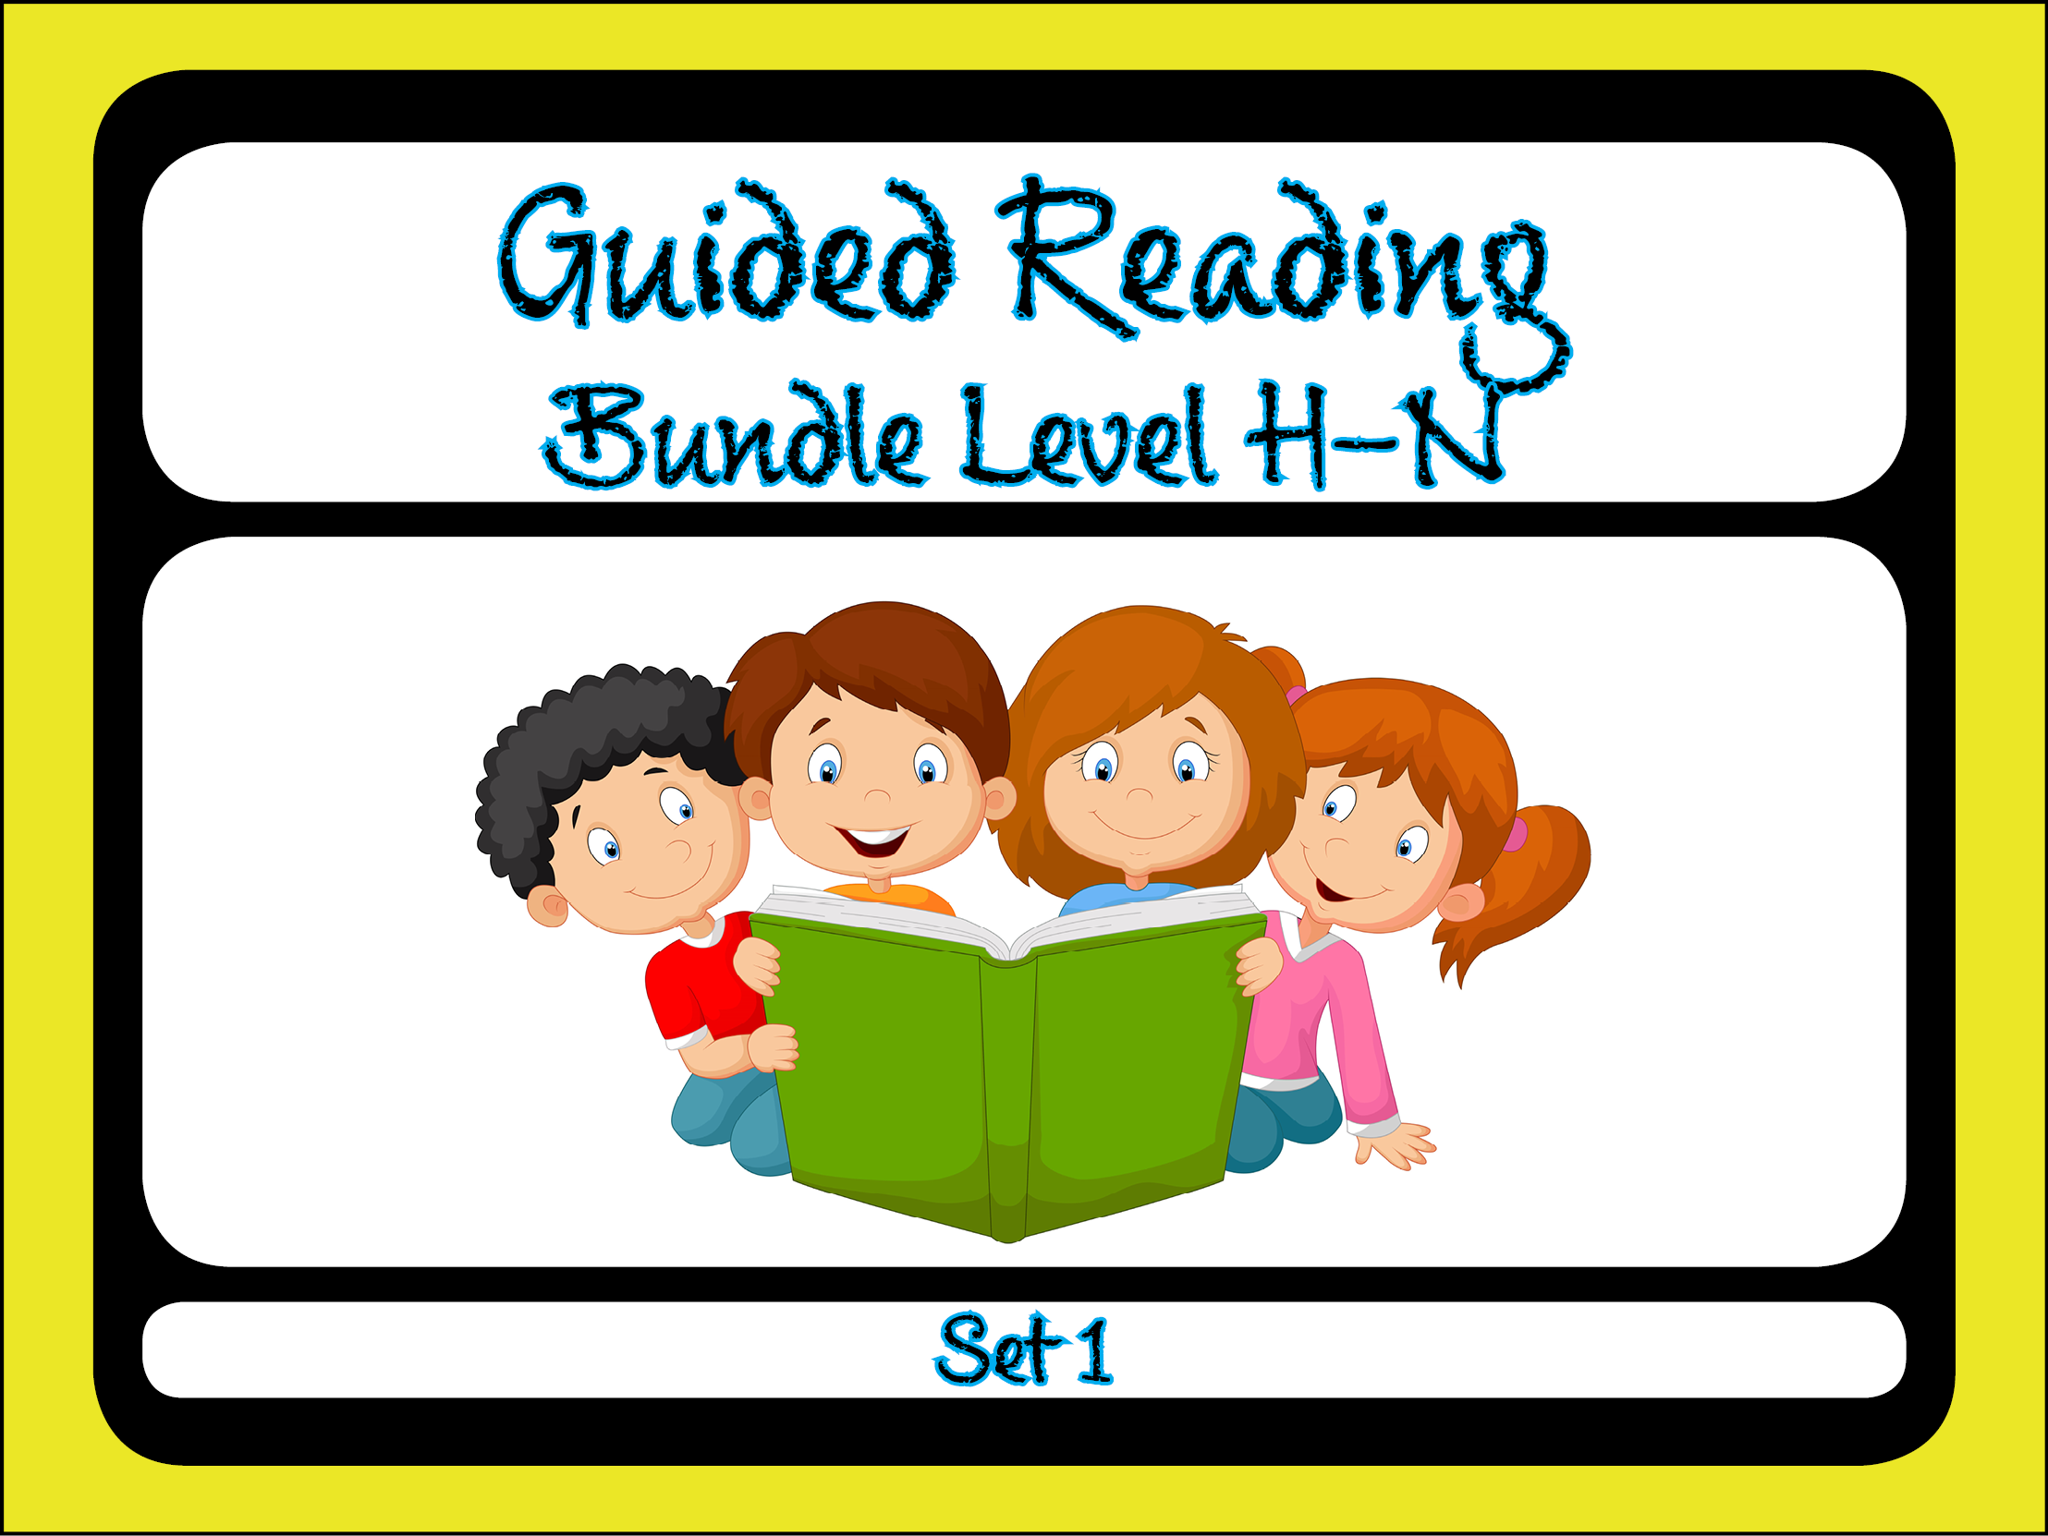 Guided Reading Level H-N Set 1